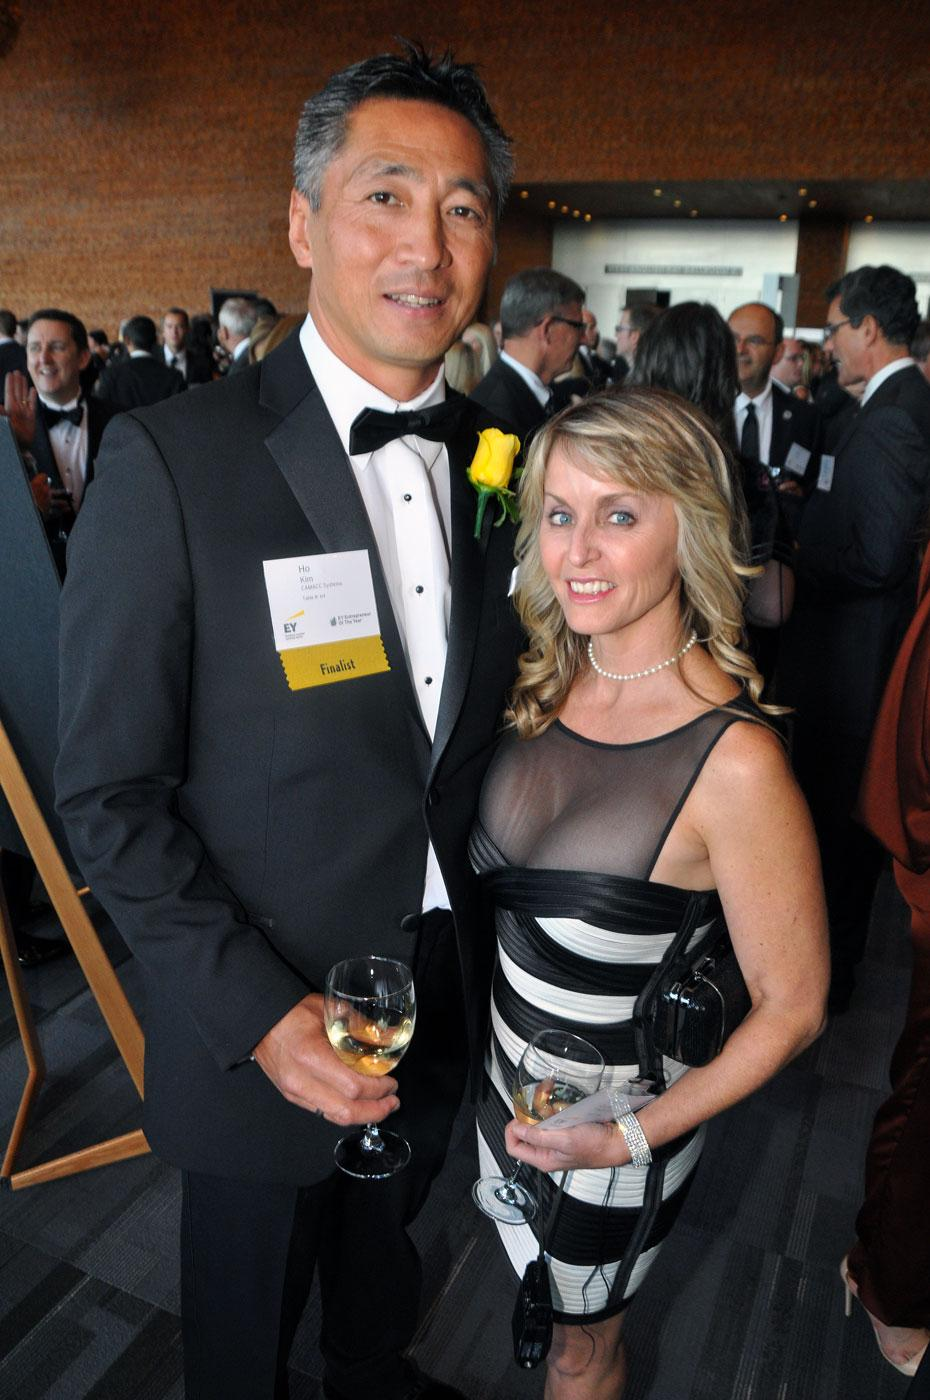 Information technology award winner Ho Kim, CAMACC Systems Inc. president & CEO; and his wife, Shelley Clarke.